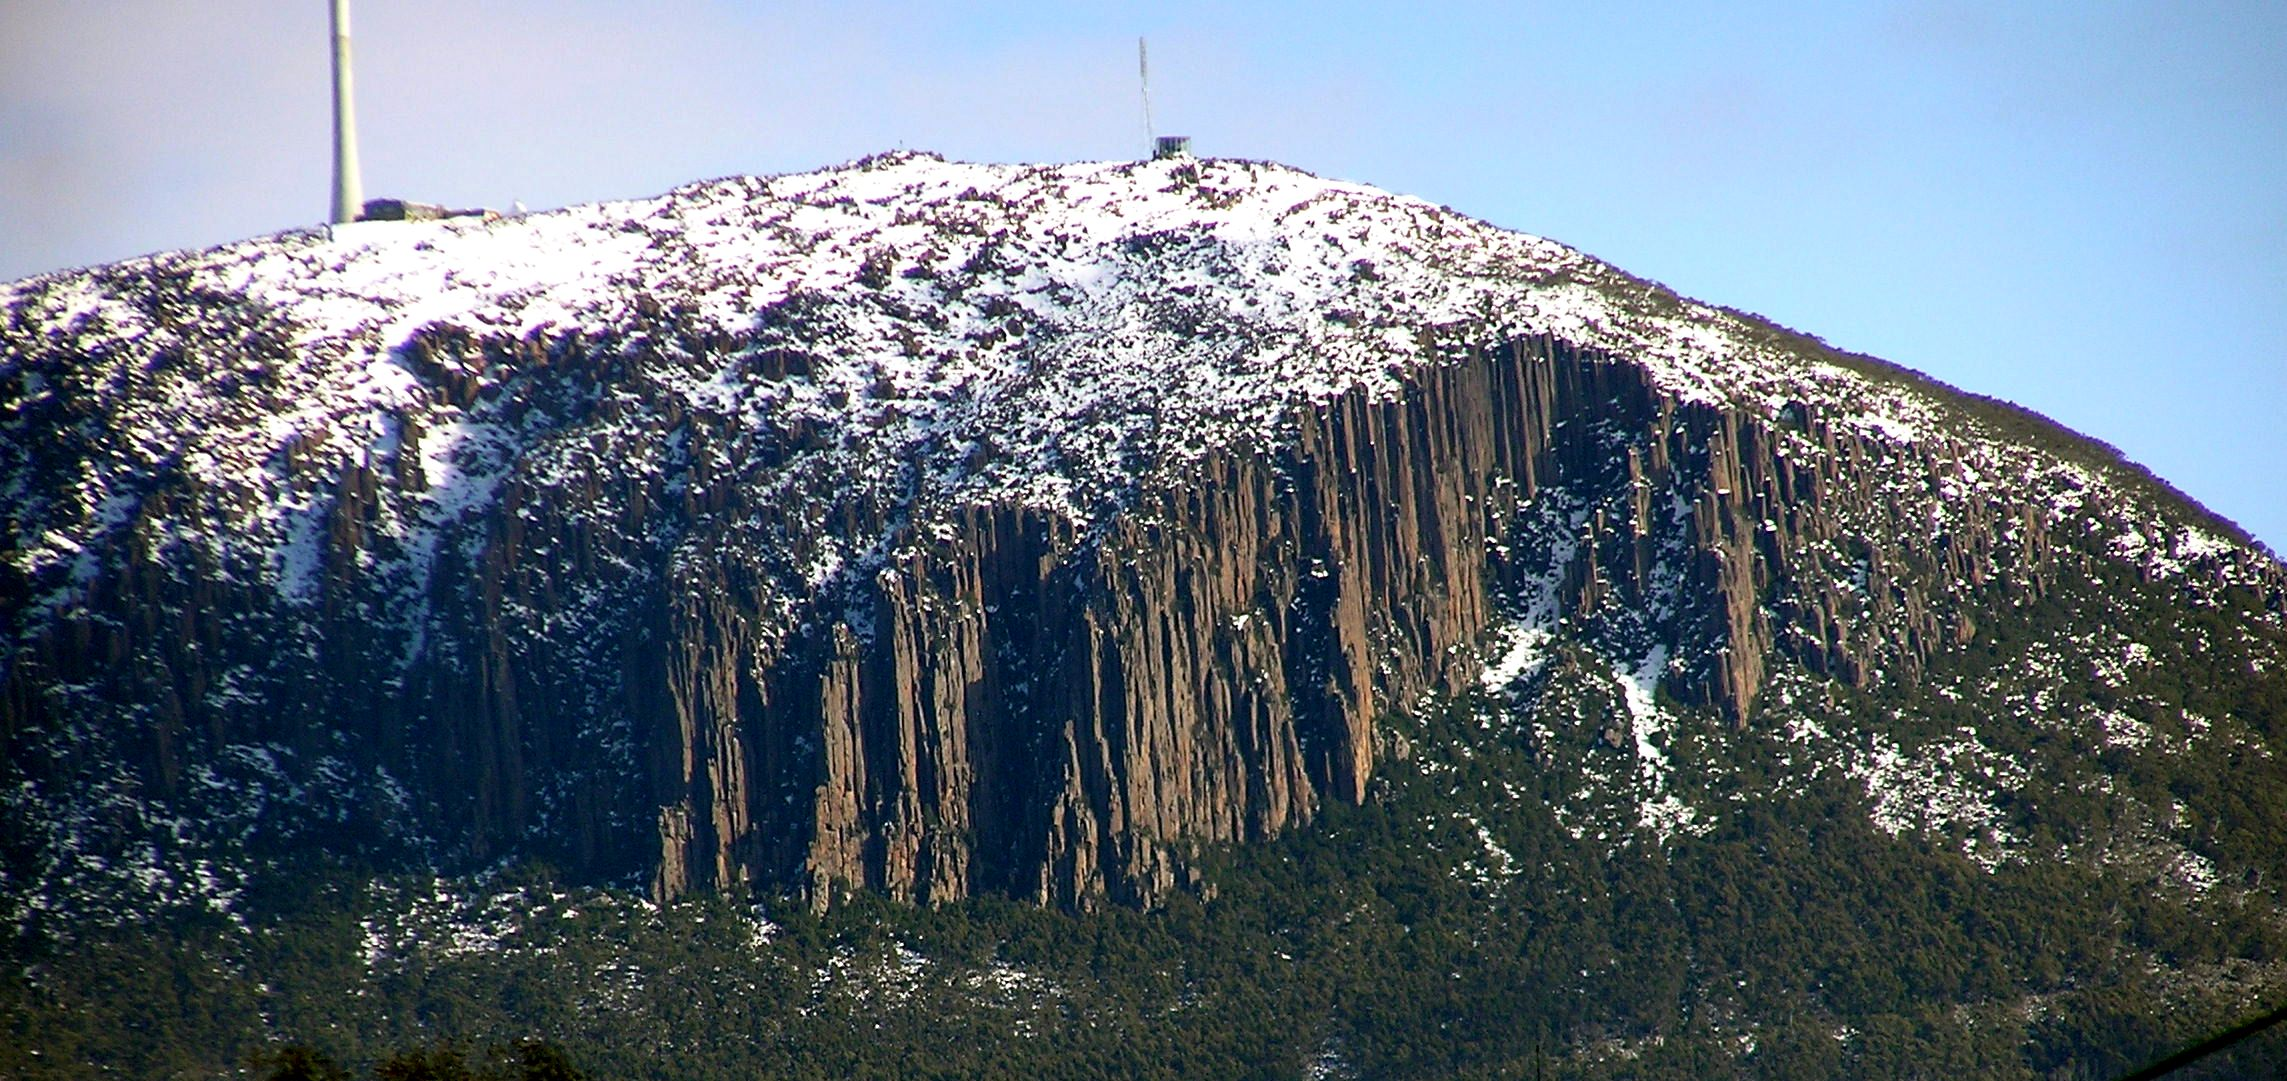 The top of Mount Wellington Tasmania showing the Organ Pipes, columnar jointed dolerite. Photo taken on August 24, 2008.